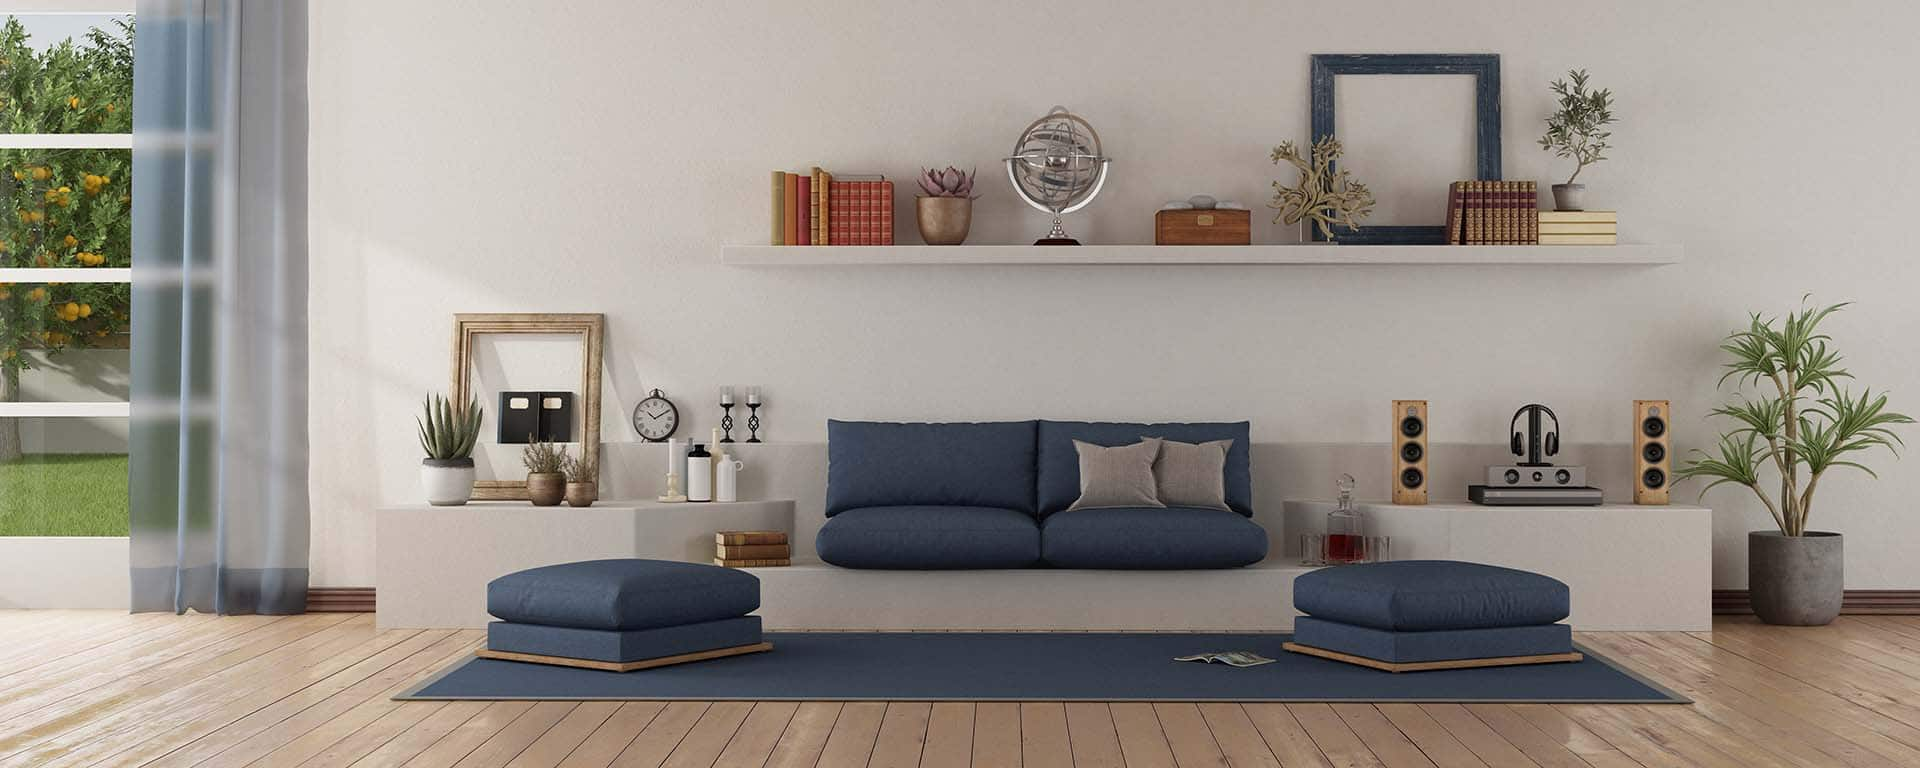 Modern white and blue living room with sofa with sofa on a white masonry structure - 3d rendering